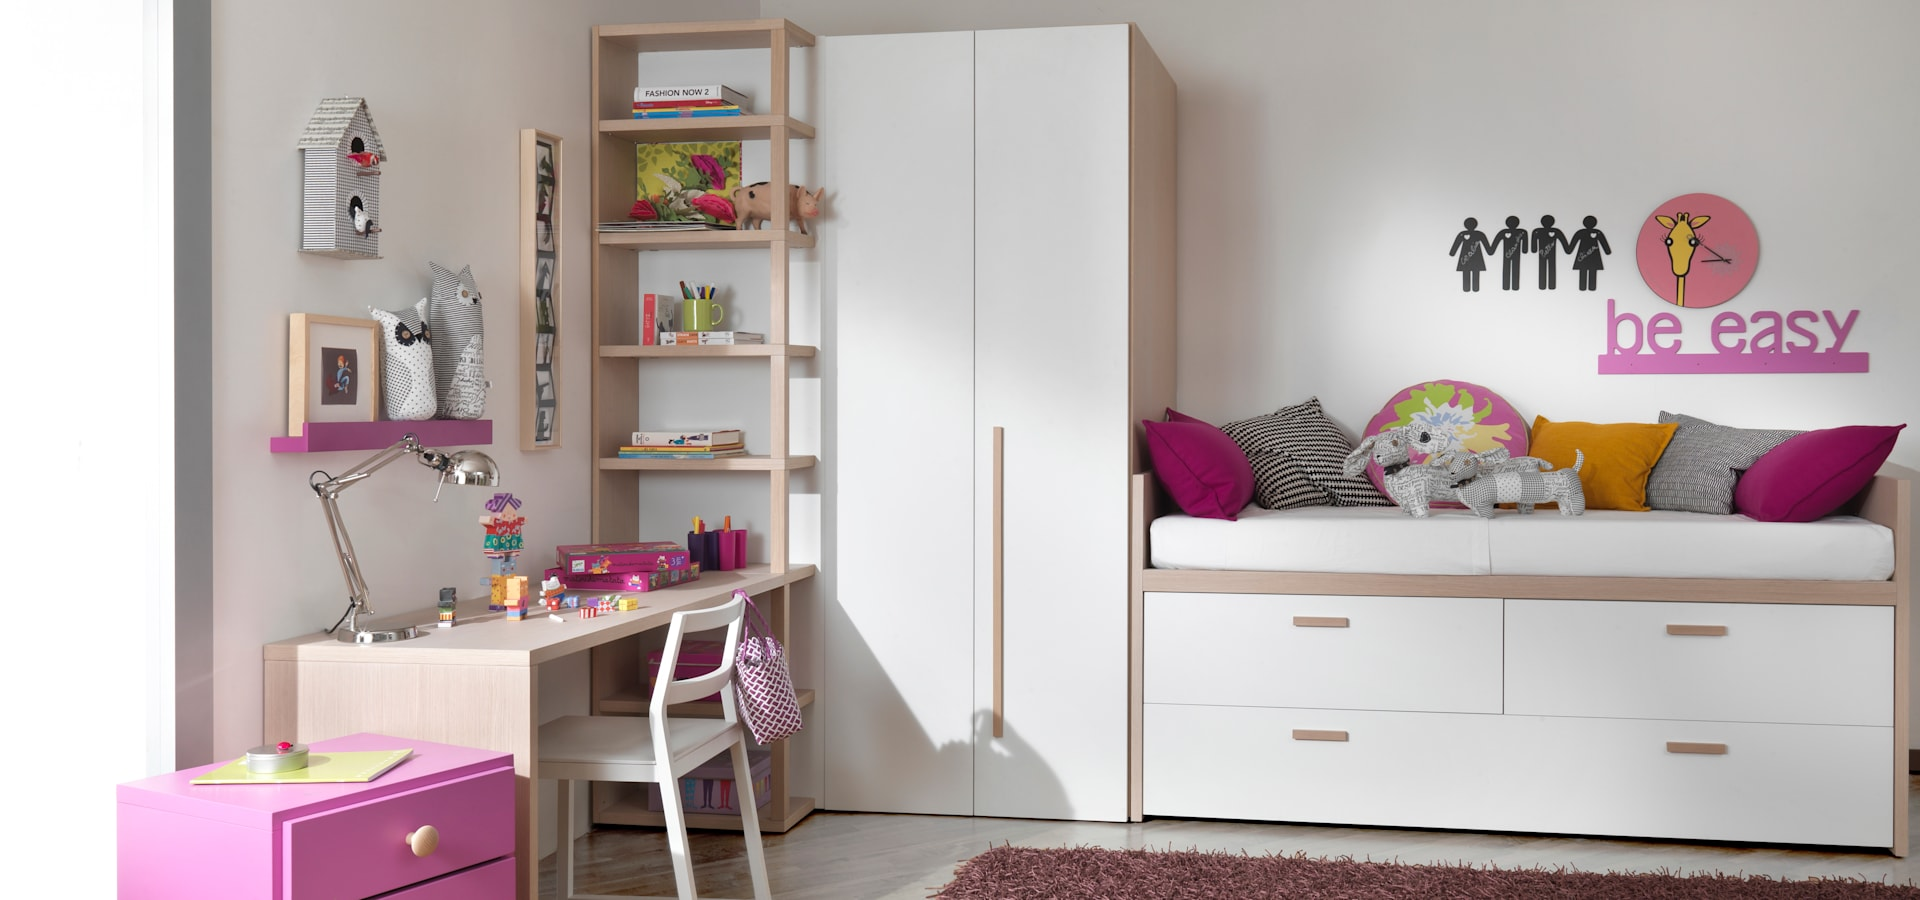 moderner stauraum im kinderzimmer par mobimio r ume f r kinder homify. Black Bedroom Furniture Sets. Home Design Ideas